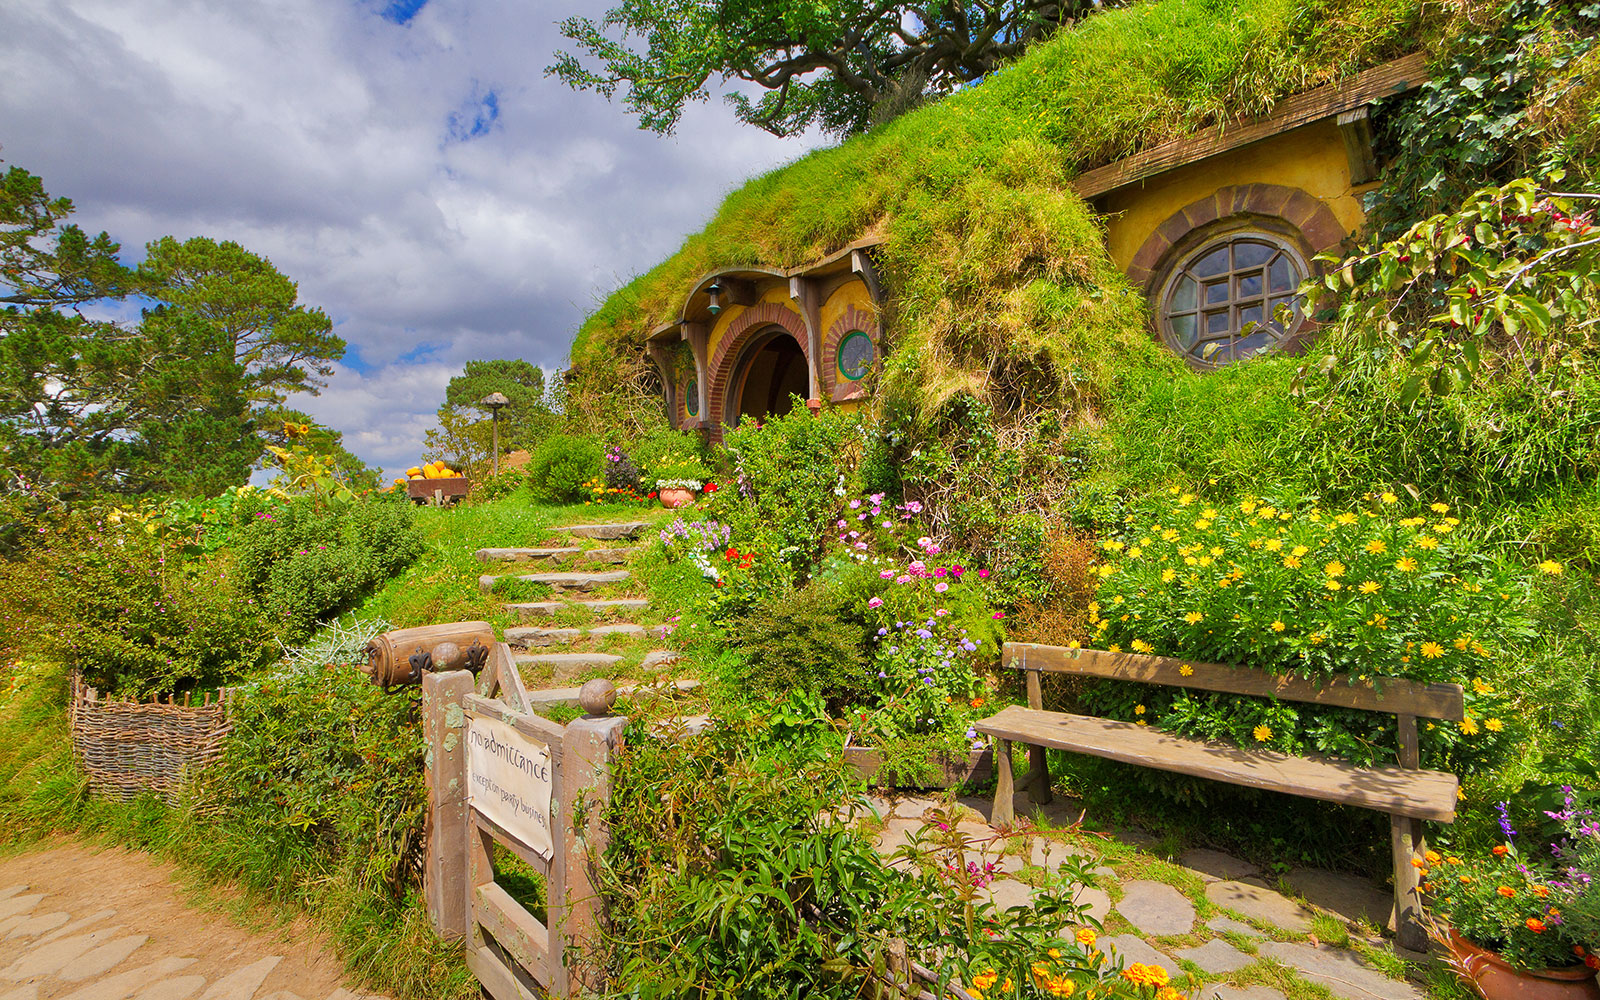 Tours Worth Taking: Hobbiton Movie Set Tour in New Zealand